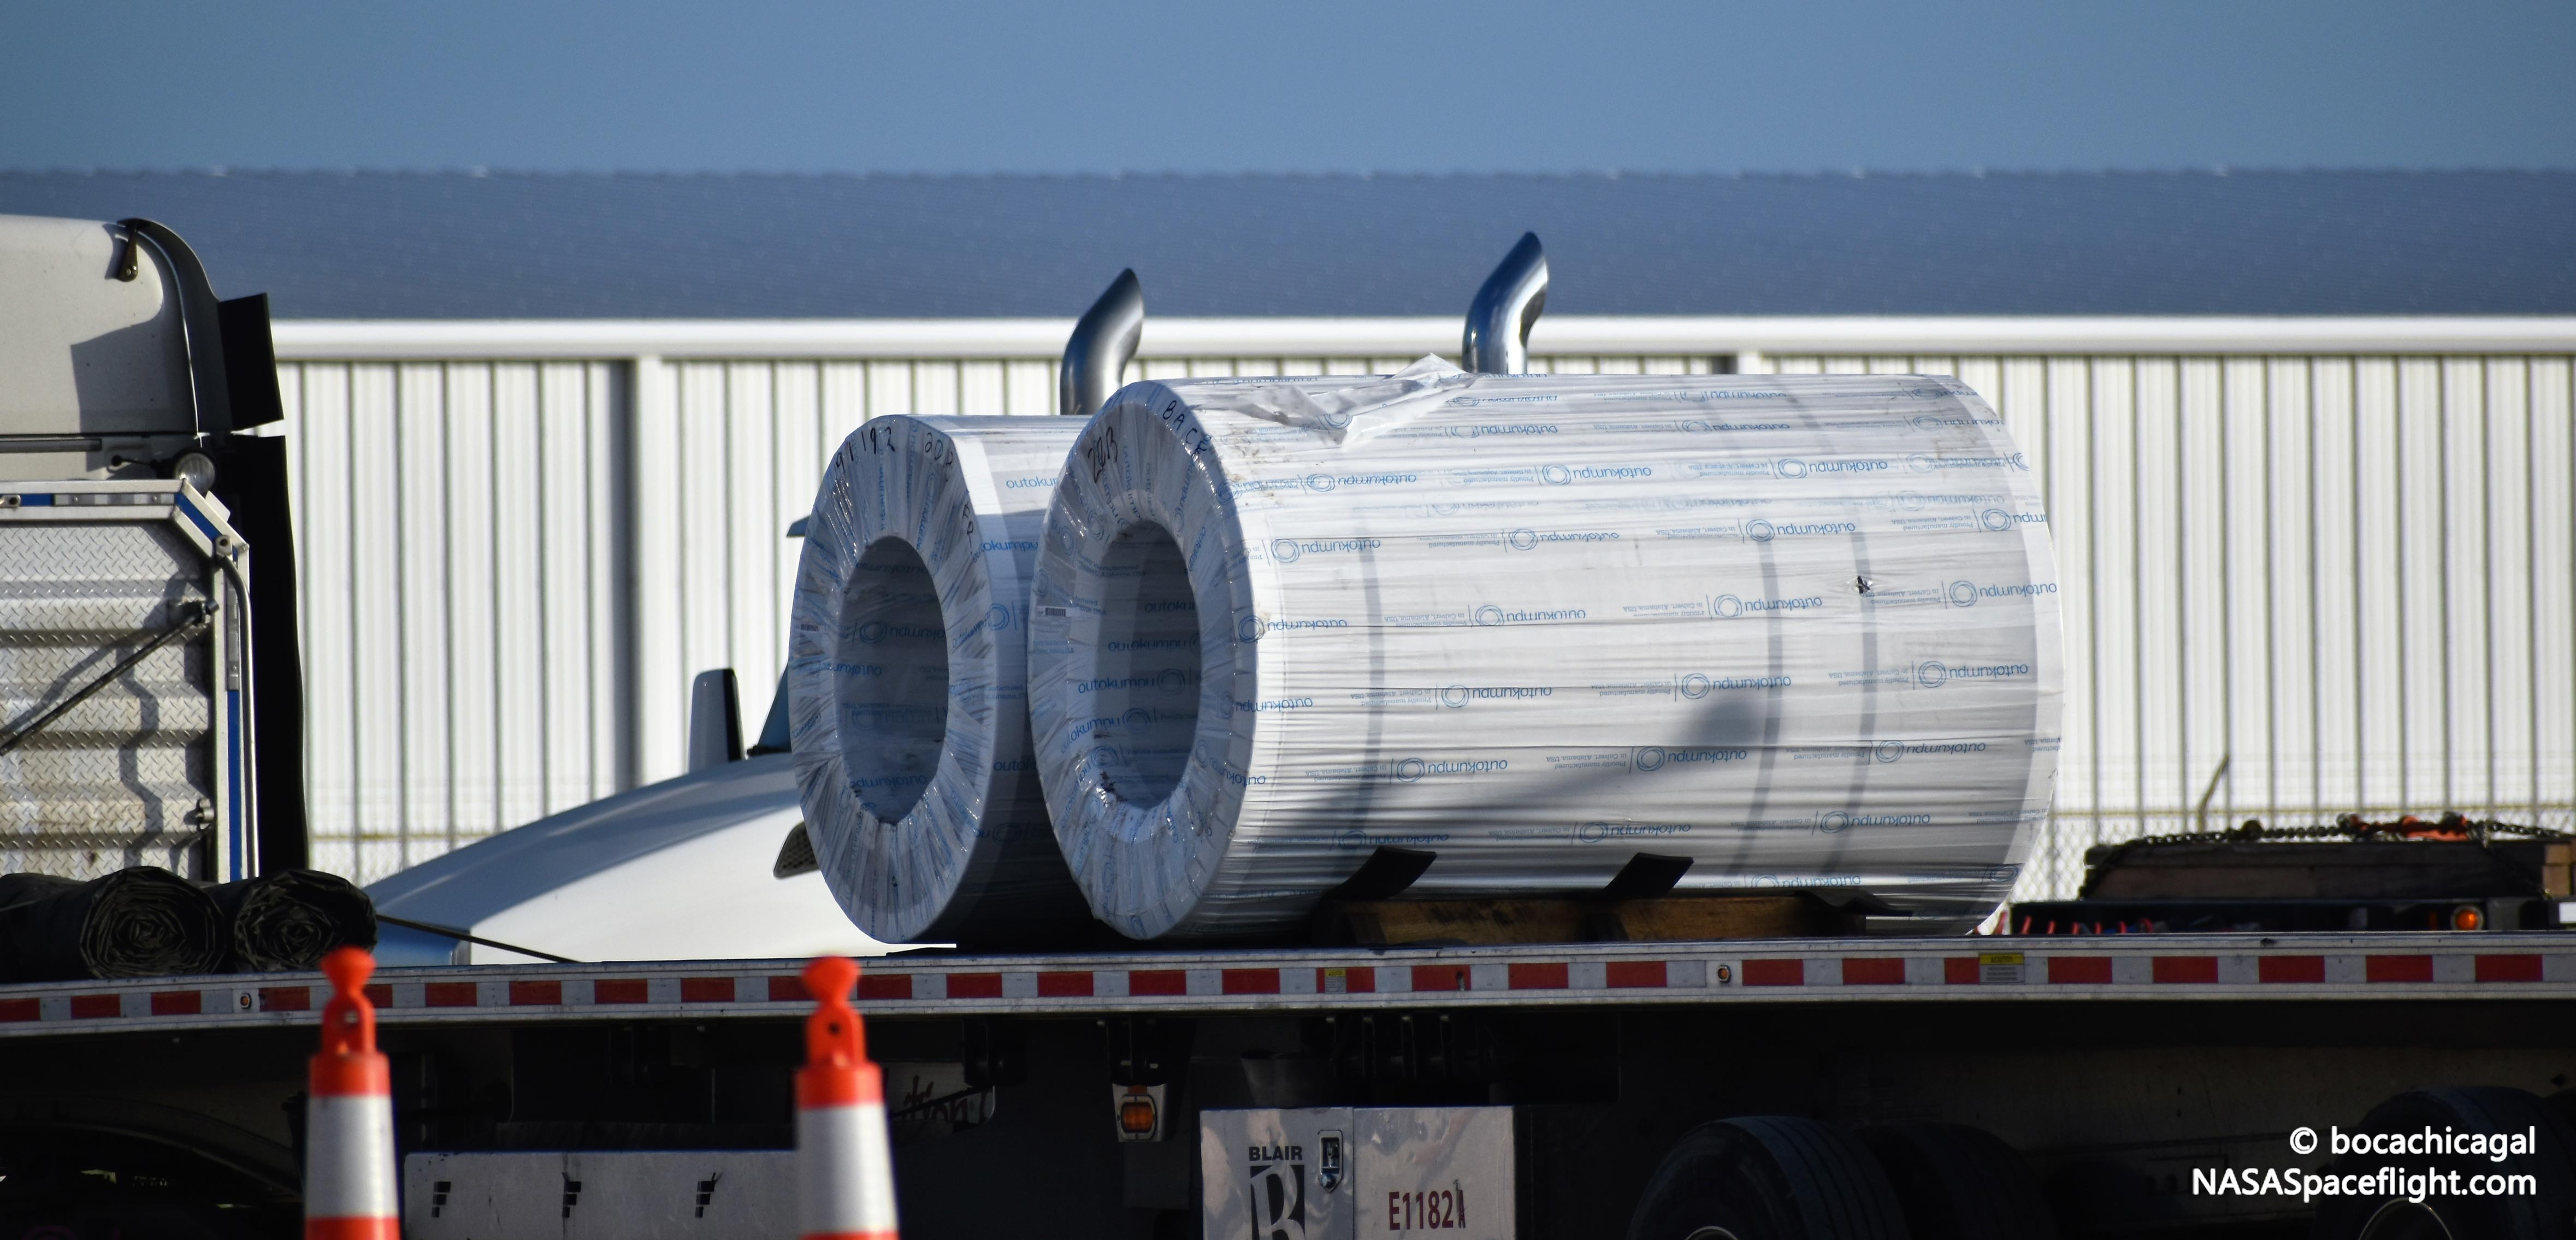 Boca Chica orbital Starship 081219 (NASASpaceflight – bocachicagal) steel delivery 1 (c)